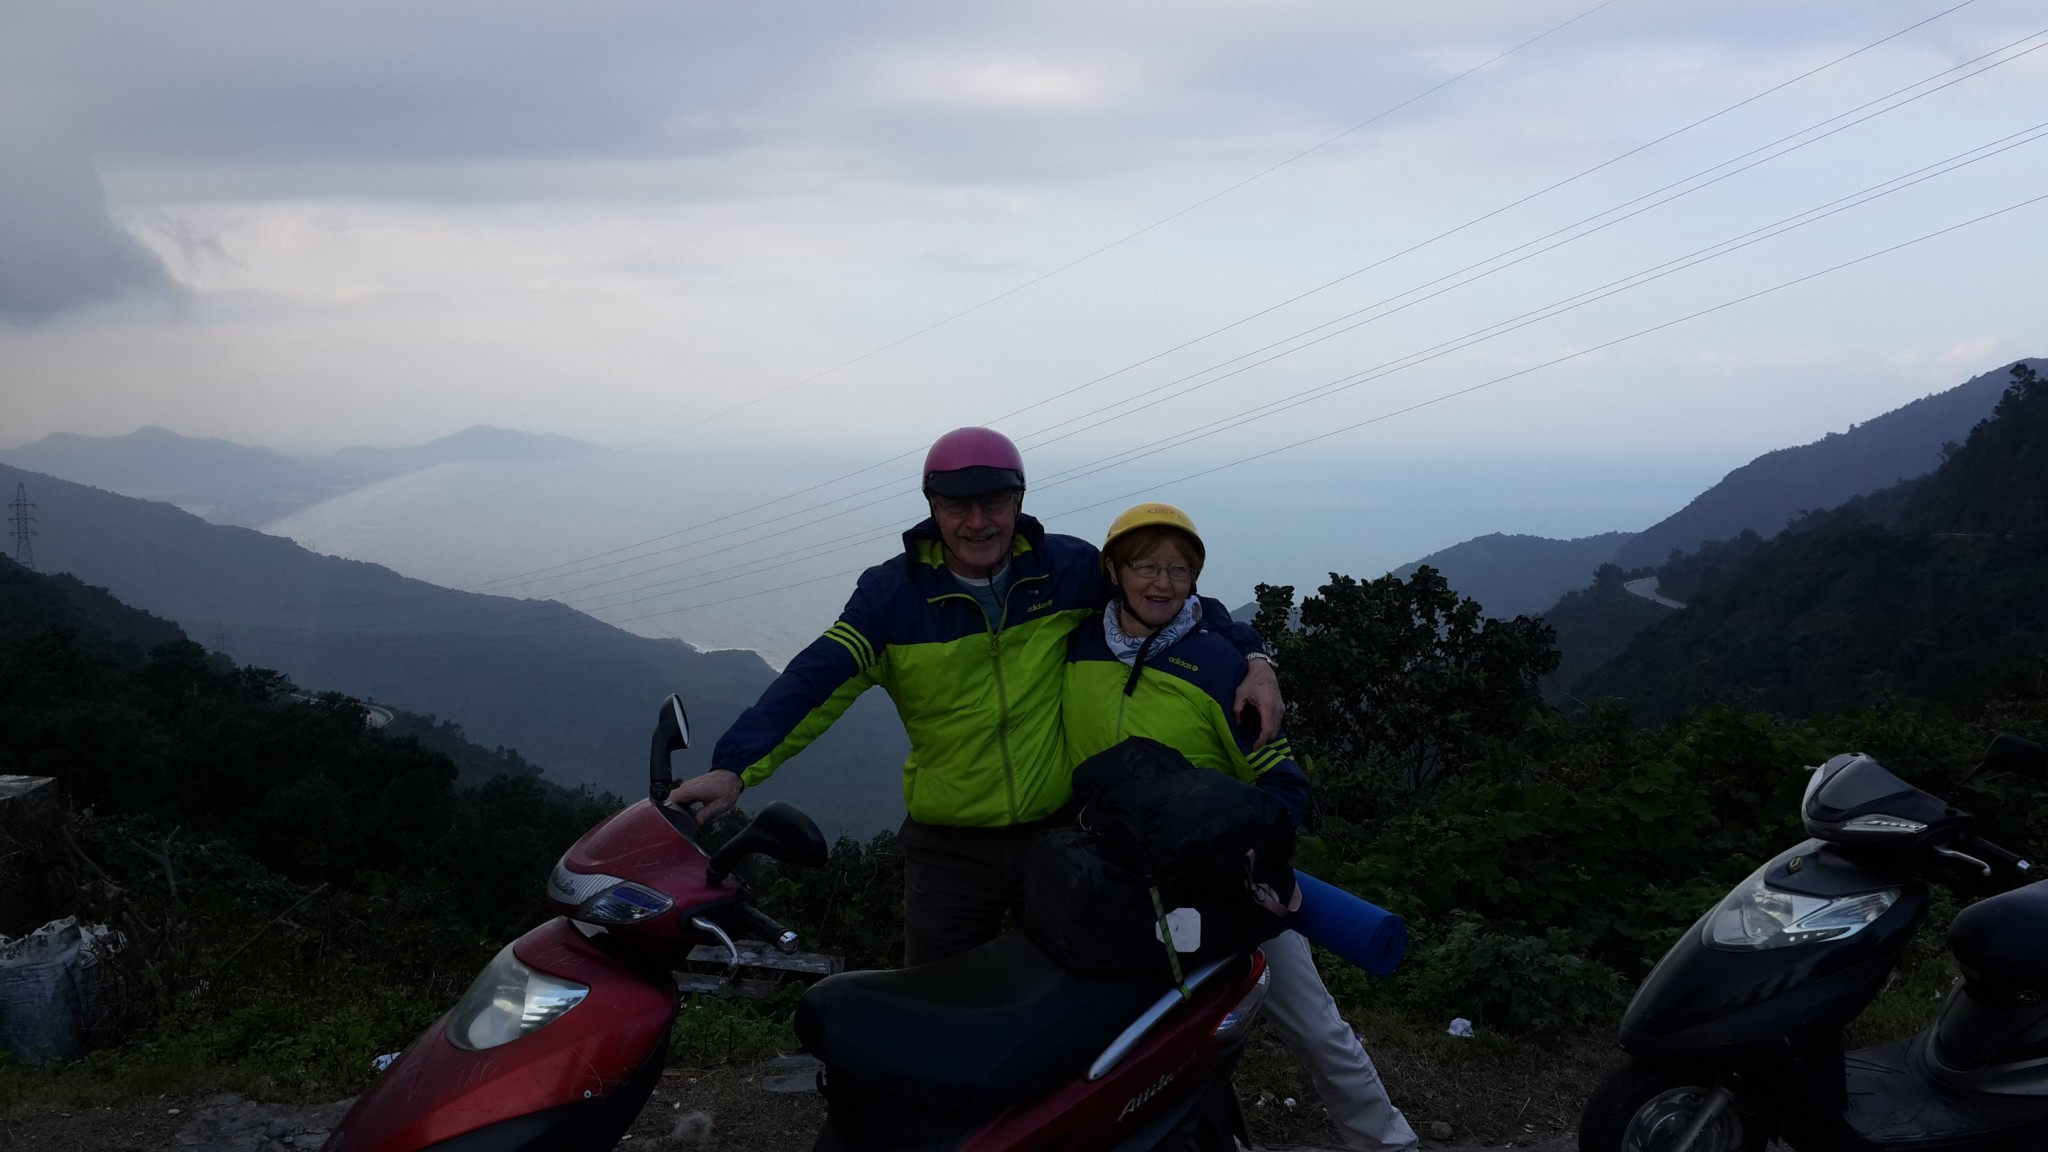 The Hai Van Pass on the way home from Hue. That's right - matching jackets, which caused quite a stir with the locals who now believe that matching clothes are an interesting quirk of married couples from Scotland. Our apologies to Scotland.